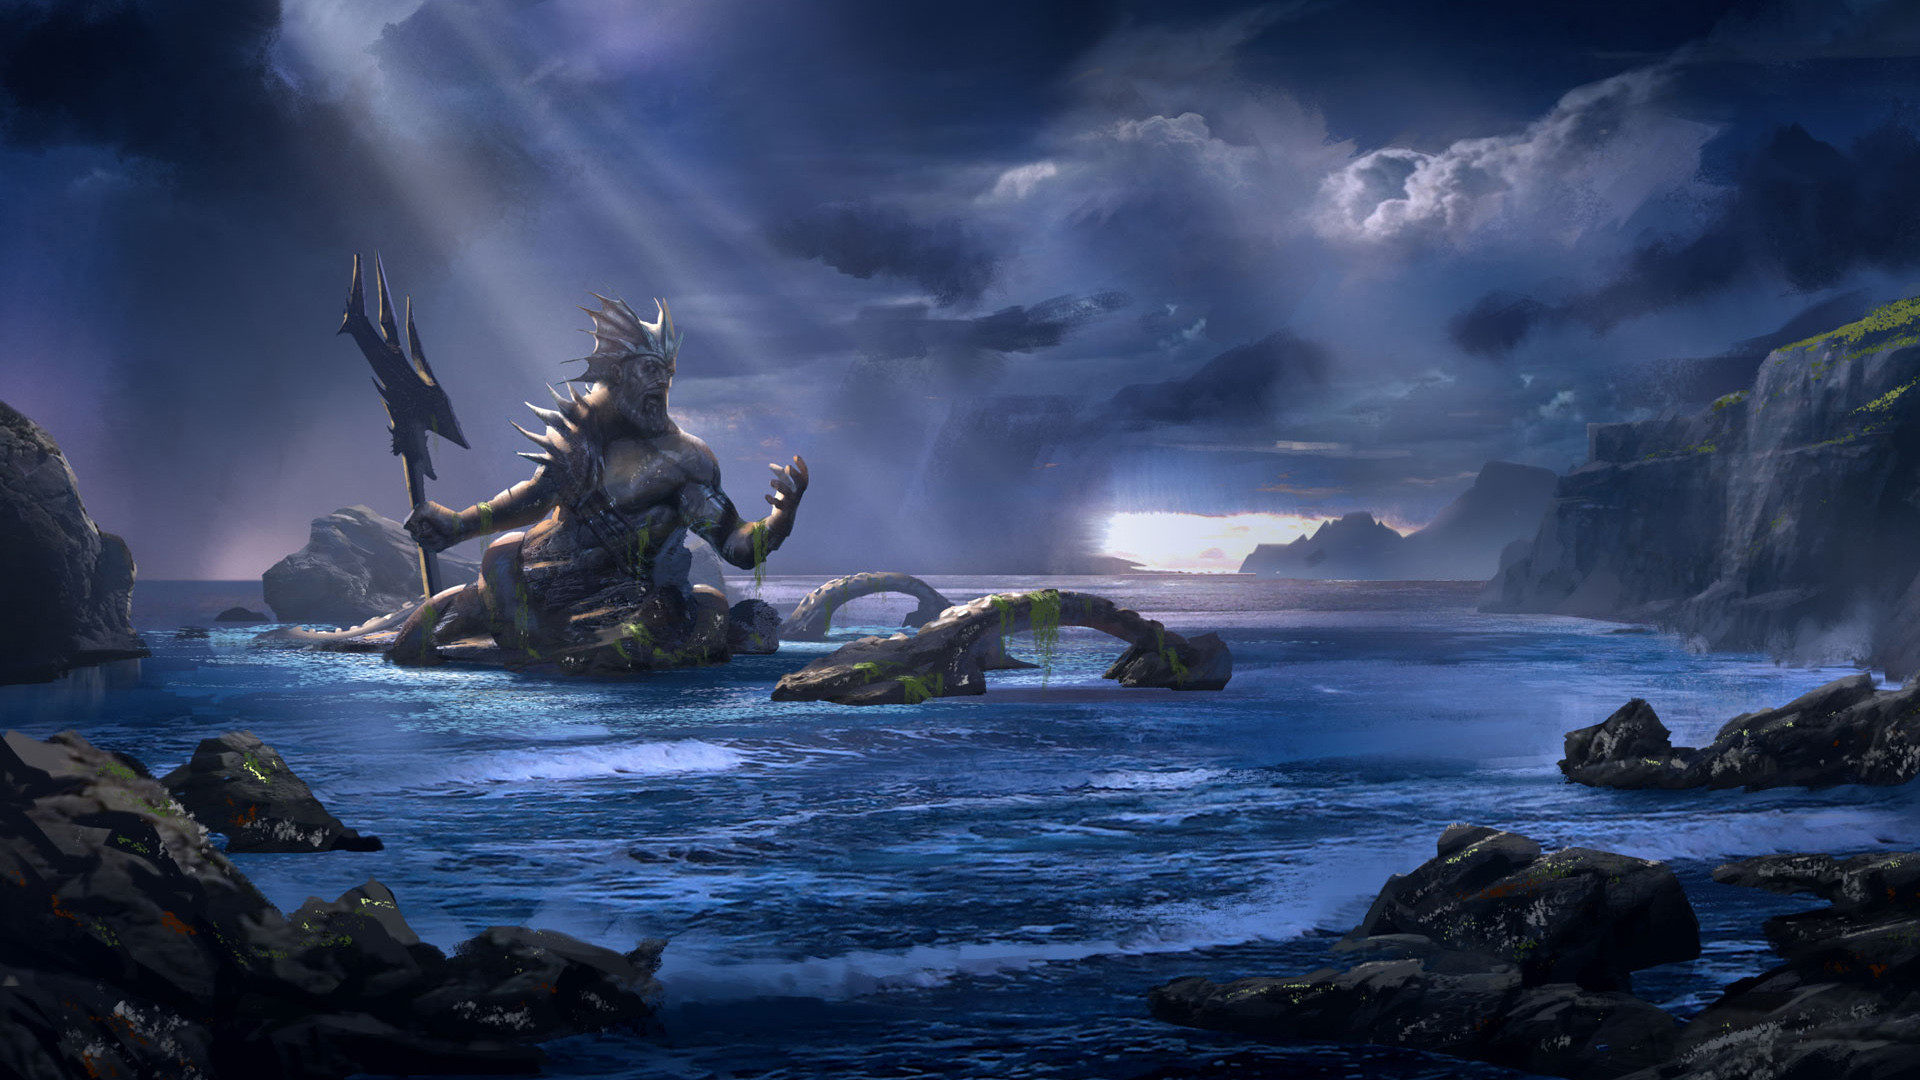 Lord Shiva Desktop Wallpapers Hd: Lord Shiva Wallpapers High Resolution (73+ Images